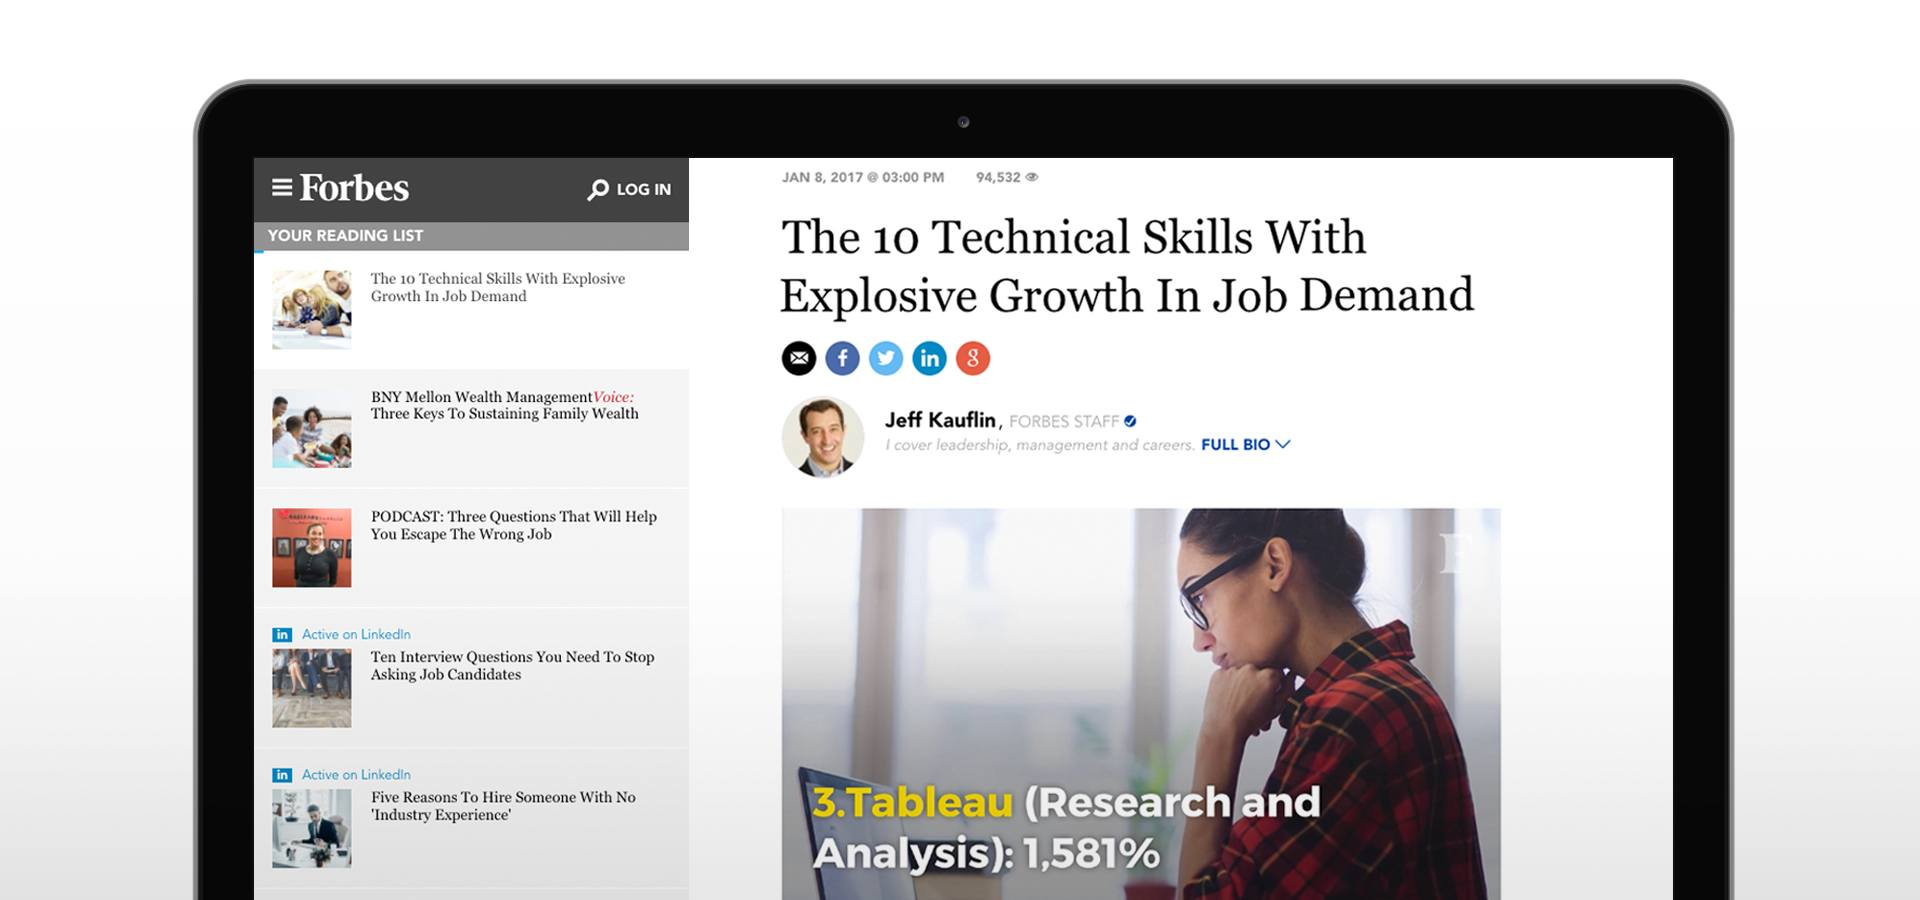 Tableau featured in Top Data Skills Forbes article